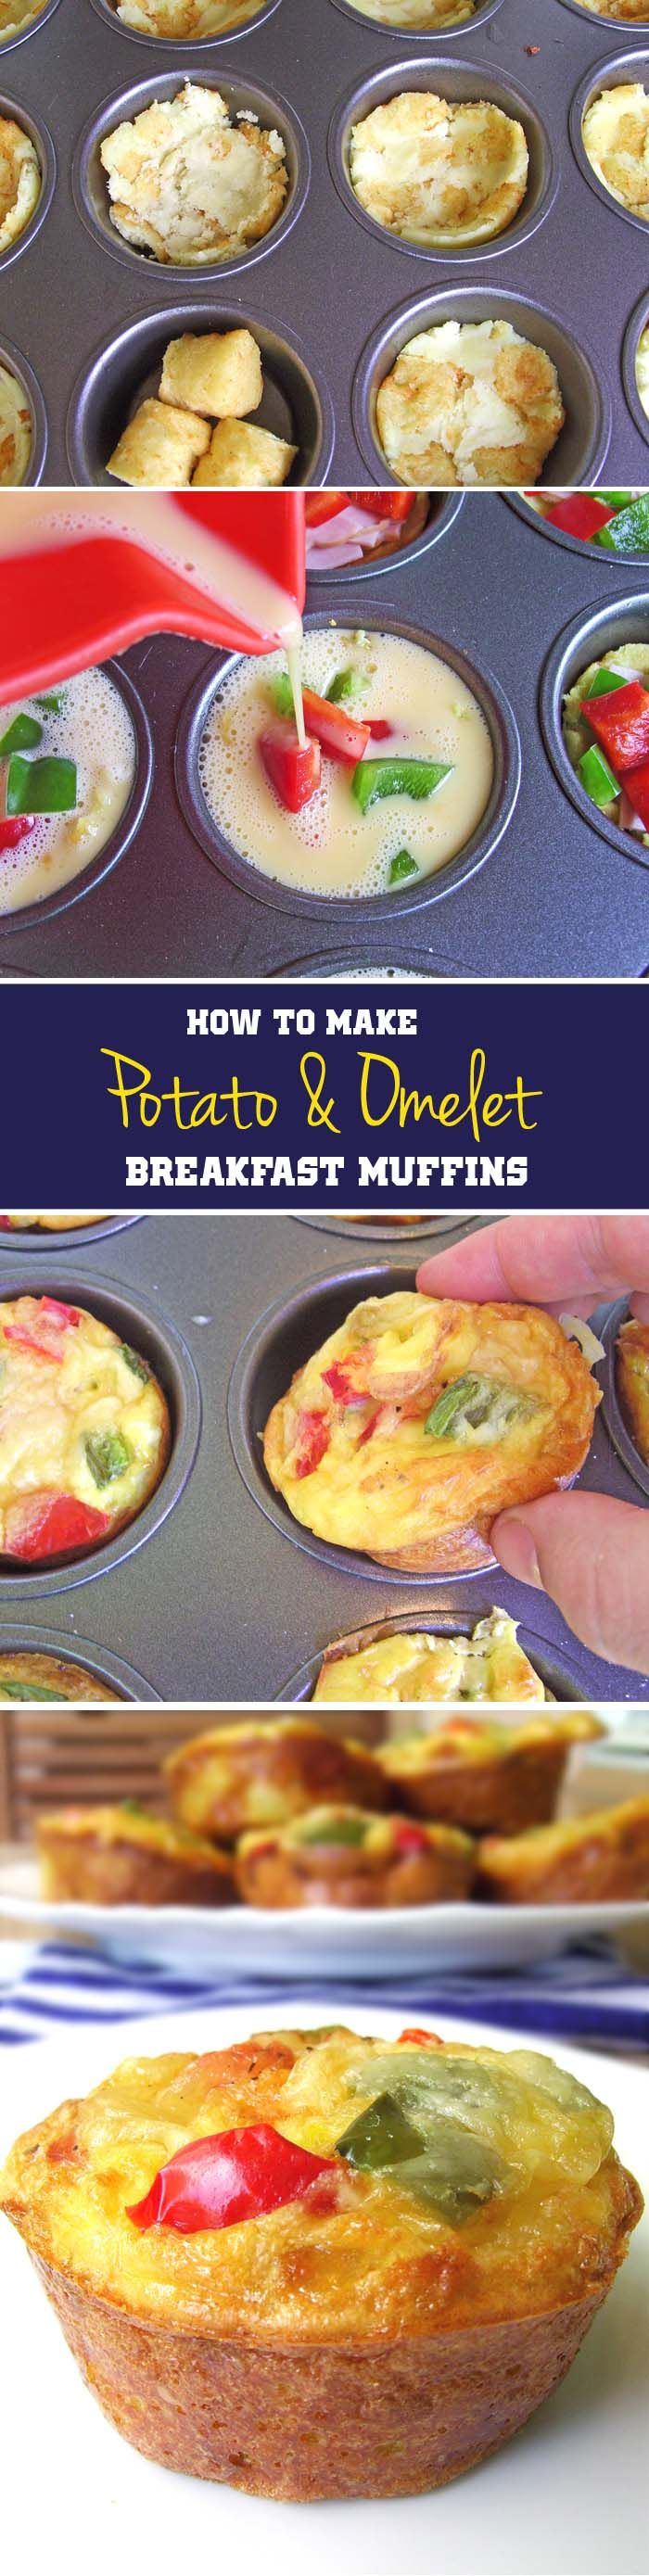 Potato & Omelet Breakfast Muffins - very delicious, without meat each muffin is less than 100 calories, and it's hard to stop with just one. Especially as I was making these the night ahead to store. Would be excellent with any breakfast meat, kielbasa, or even chicken. I actually think these make a lovely night time snack. Mine need to be reheated in the microwave 55 seconds from frozen.